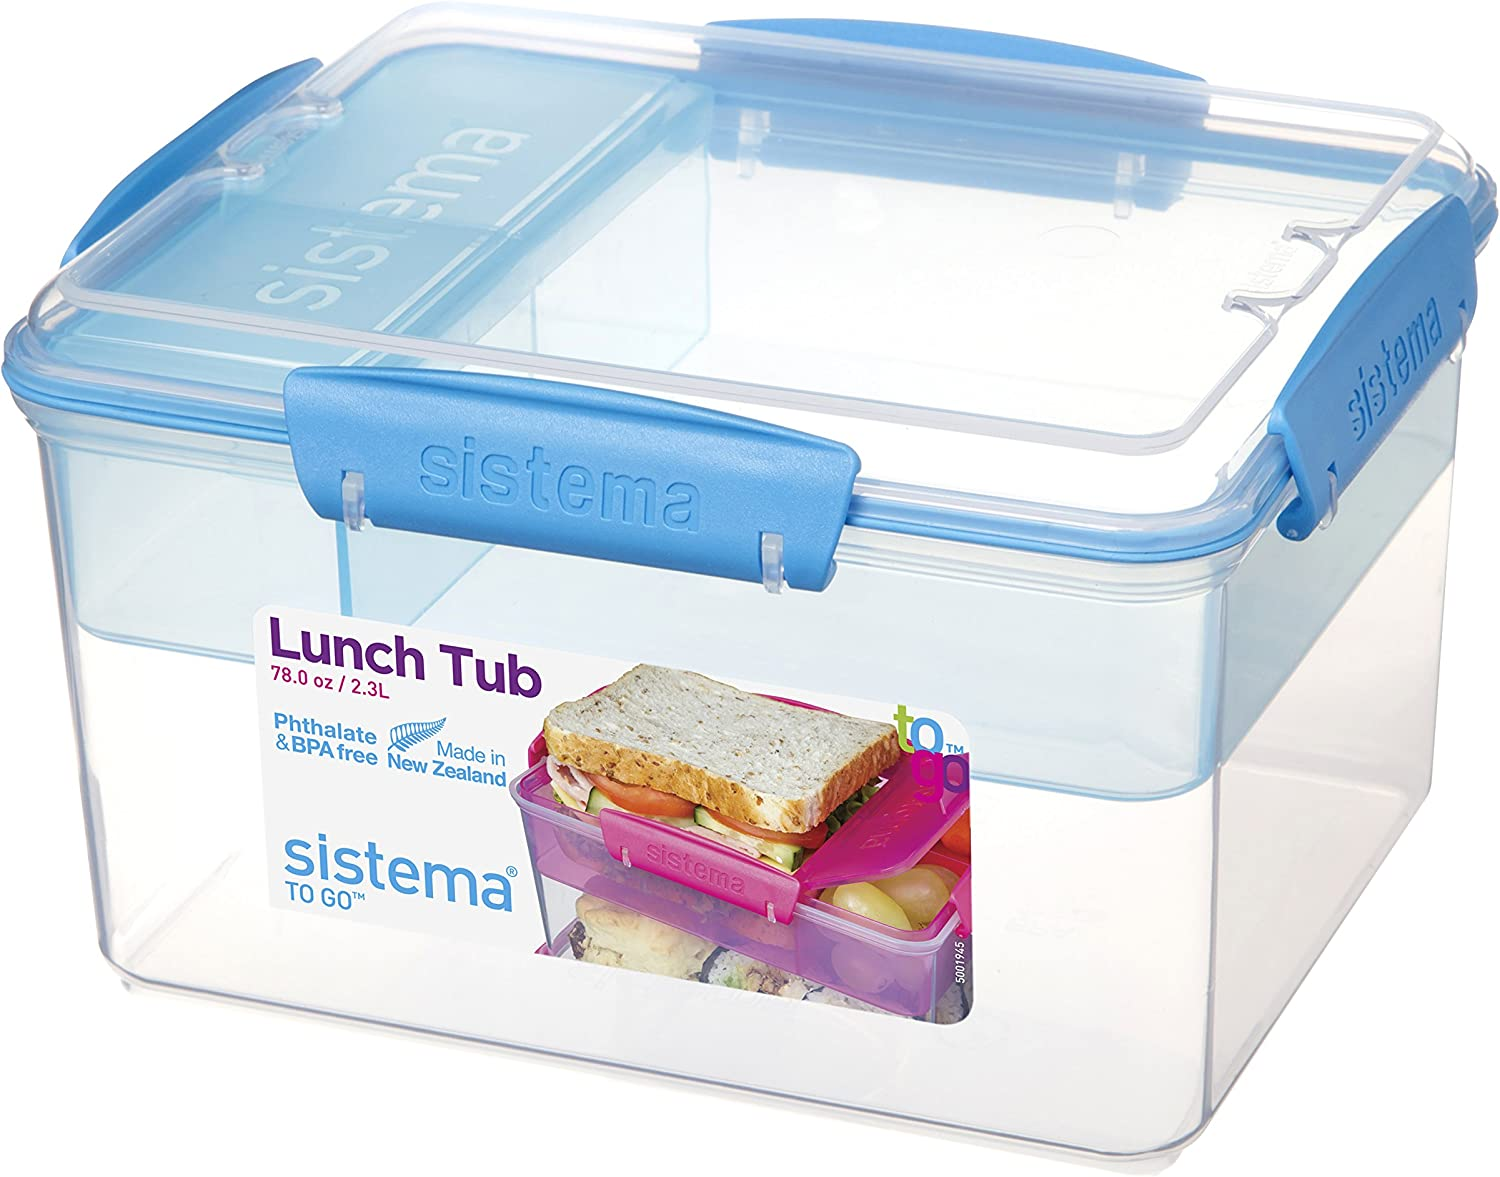 NEW 1.5L LITRE FOOD STORAGE TUB PACKED LUNCH BOX ......